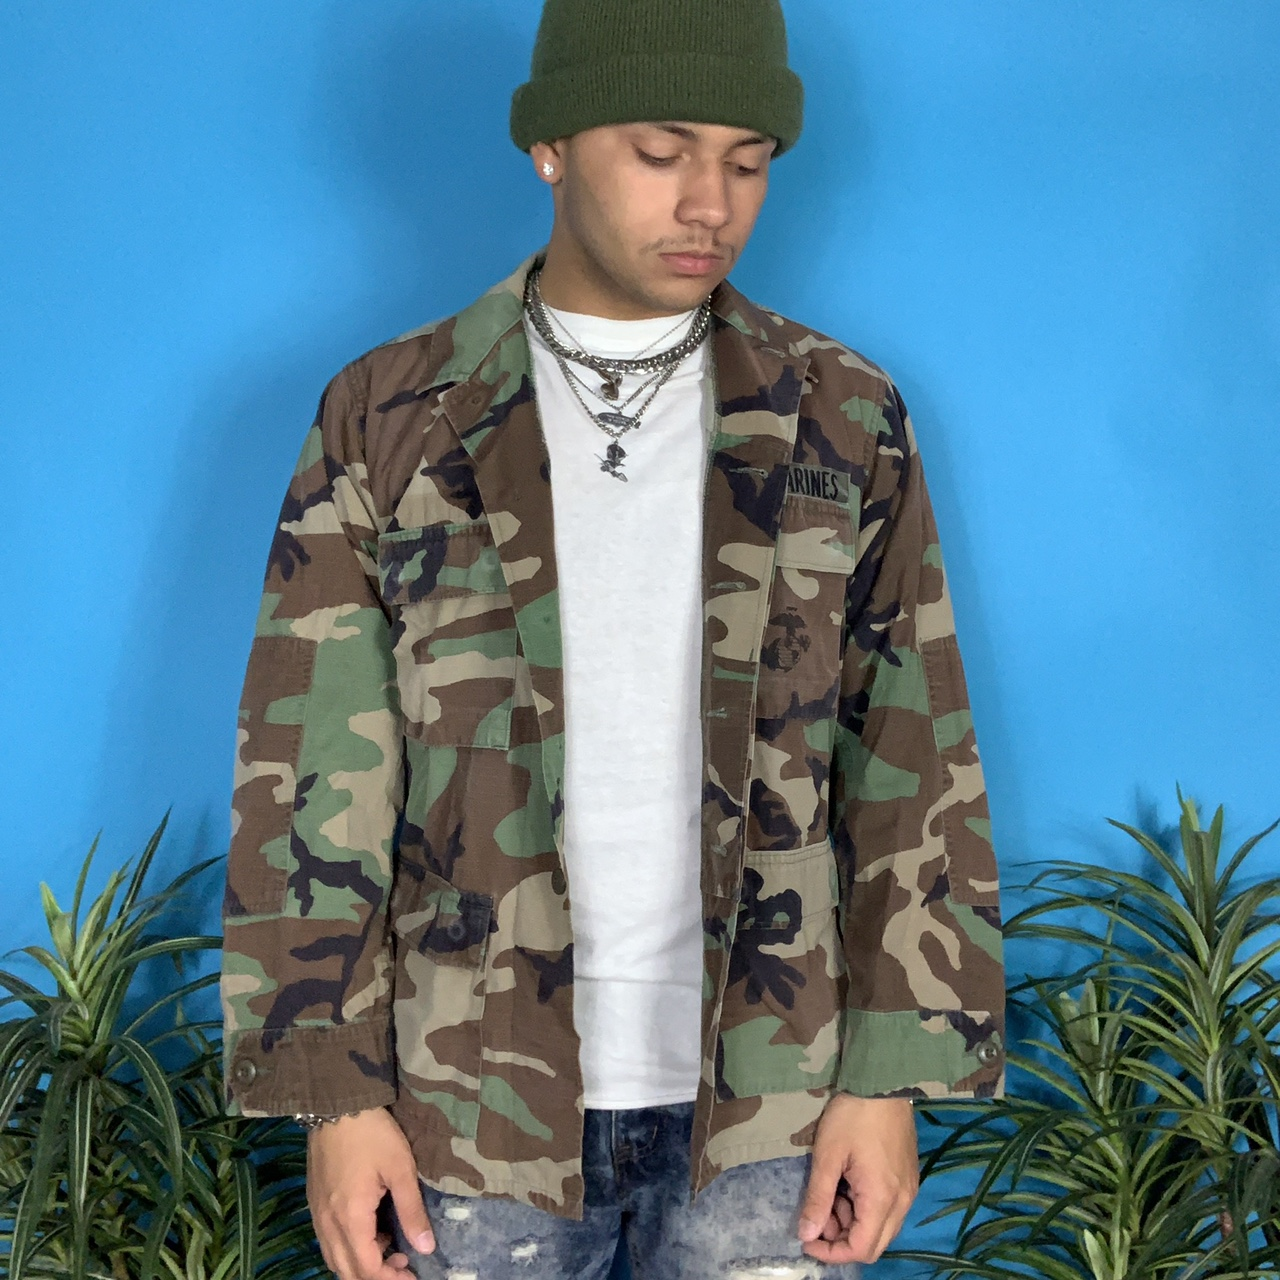 Product Image 1 - Military issued camouflage jacket. Fits